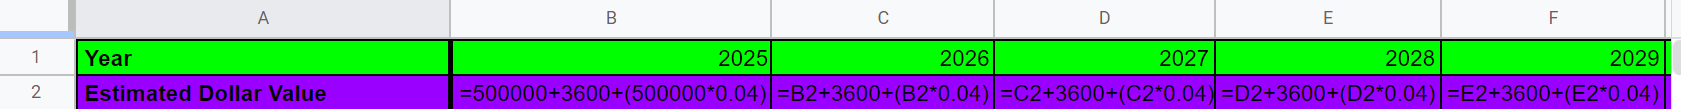 Google Sheets row 2, columns A-F, highlighted in purple. Cell A2 reads Estimated Dollar Value. Cells B2 through F2 shows formulas in each of the cells.